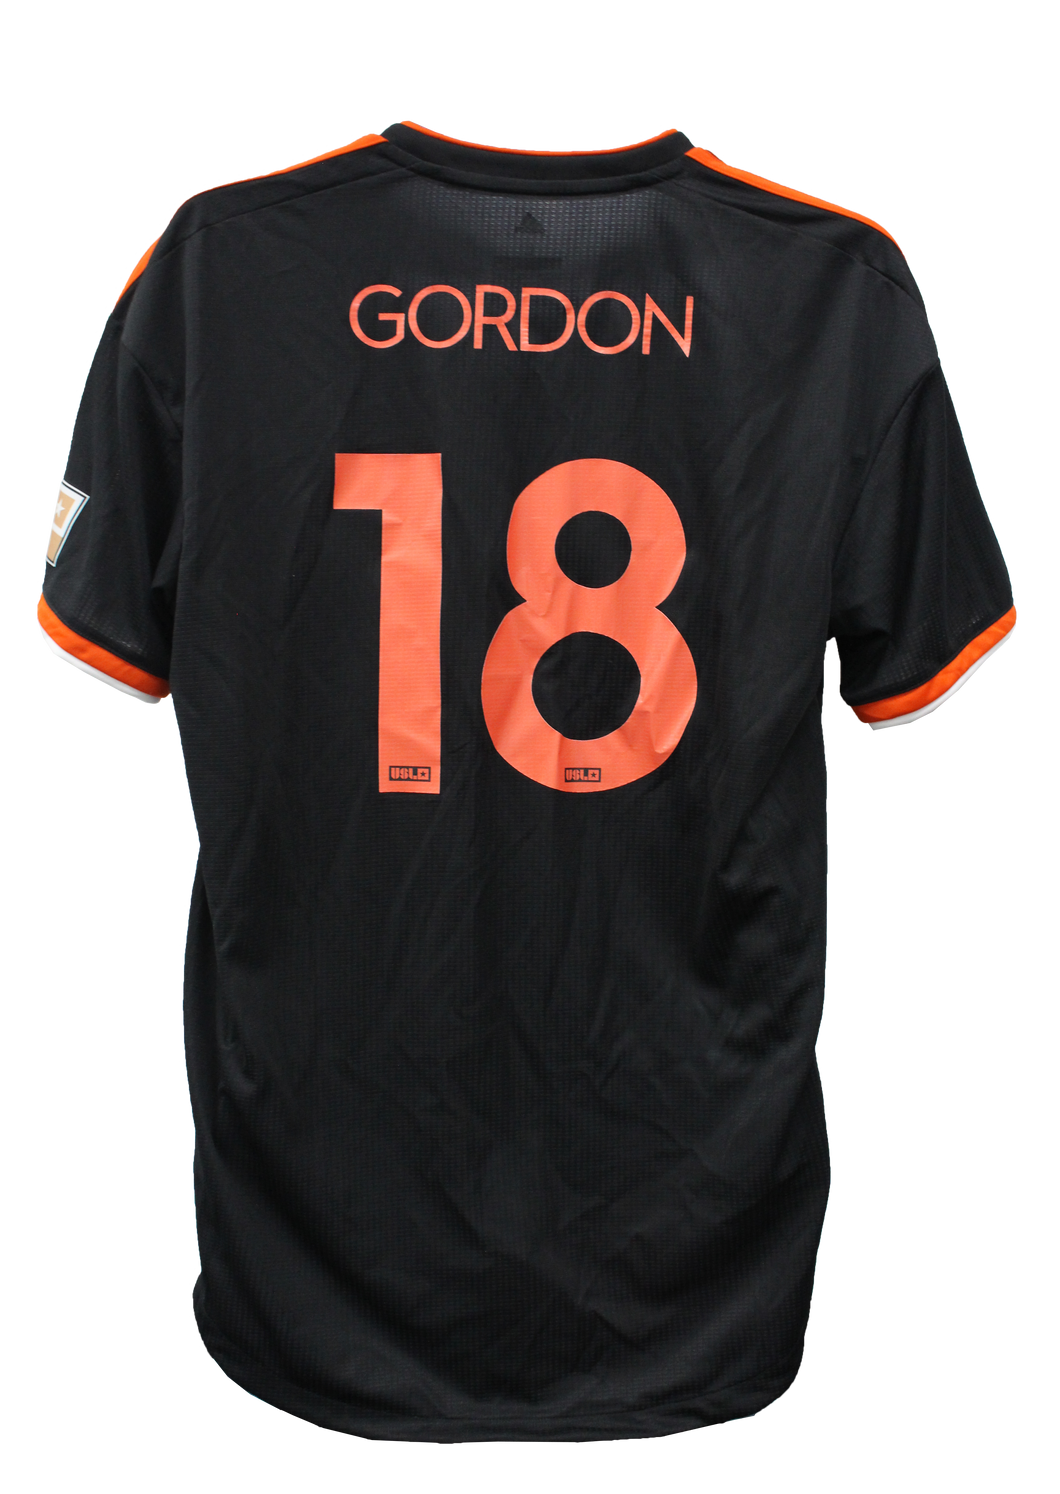 Authentic Game Worn Jersey - Gordon